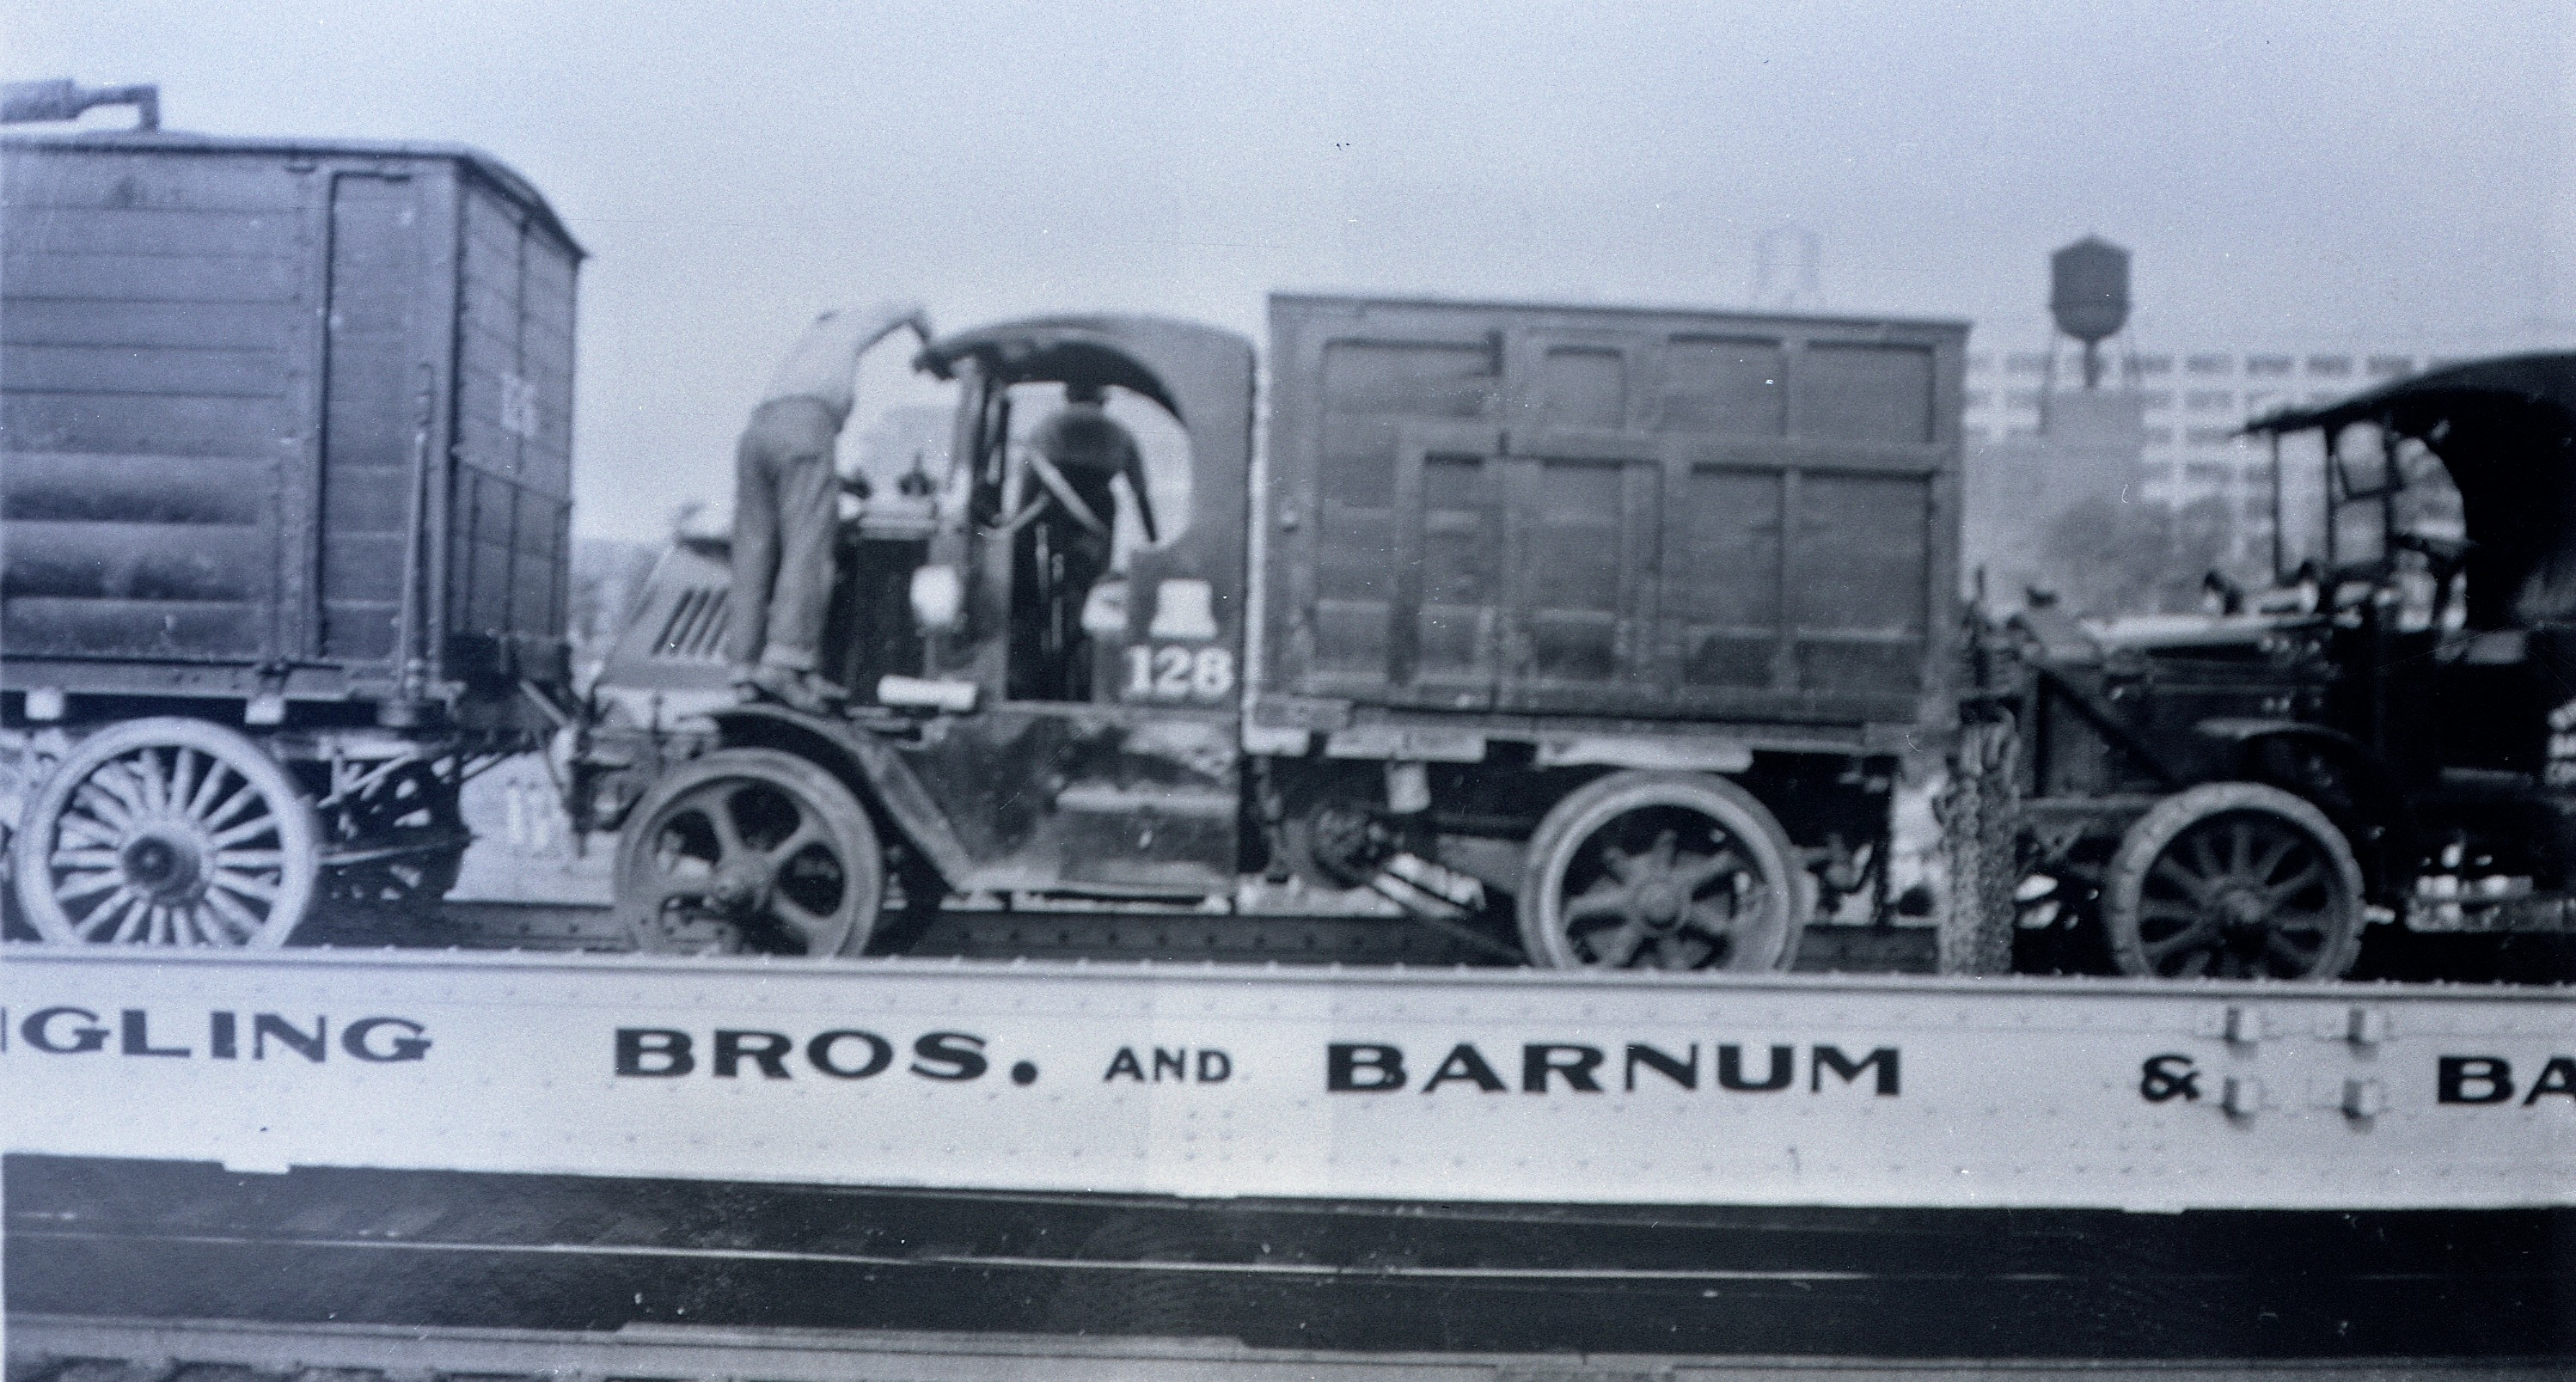 Ringling Bros Barnum   Bailey  1932  Trucks on flat cars Posted 1of 13